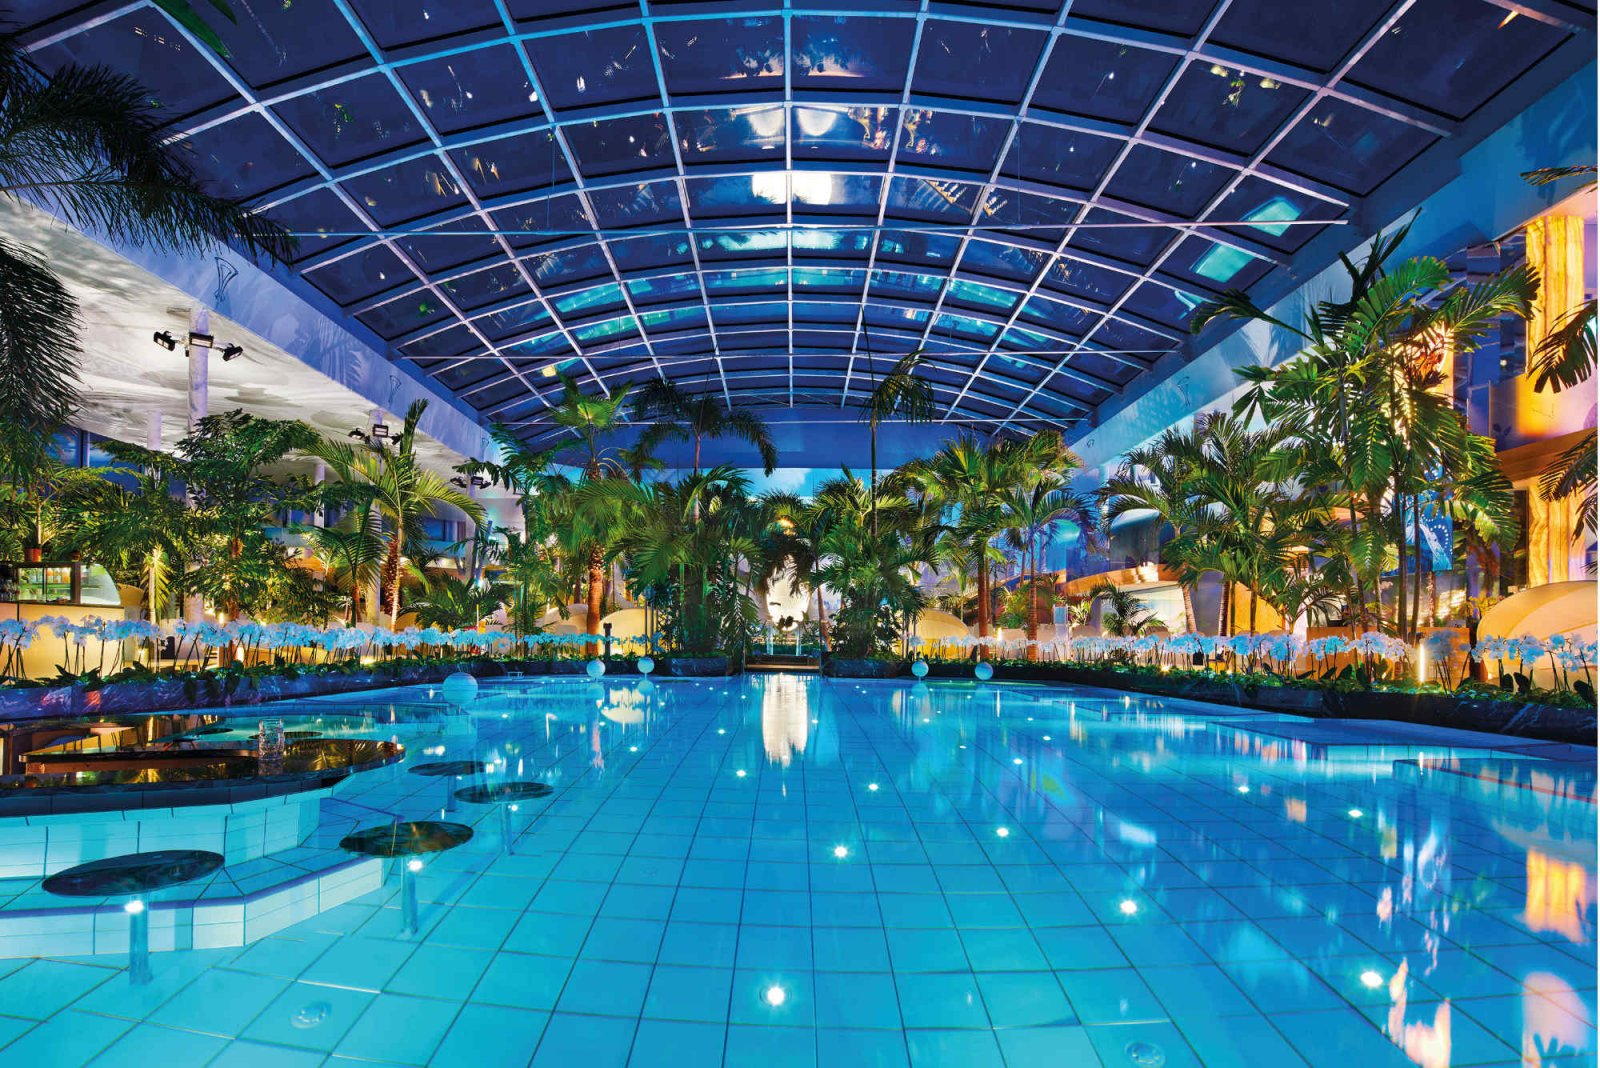 7 Tropical Swimming Pools In Germany That Are Out Of This World